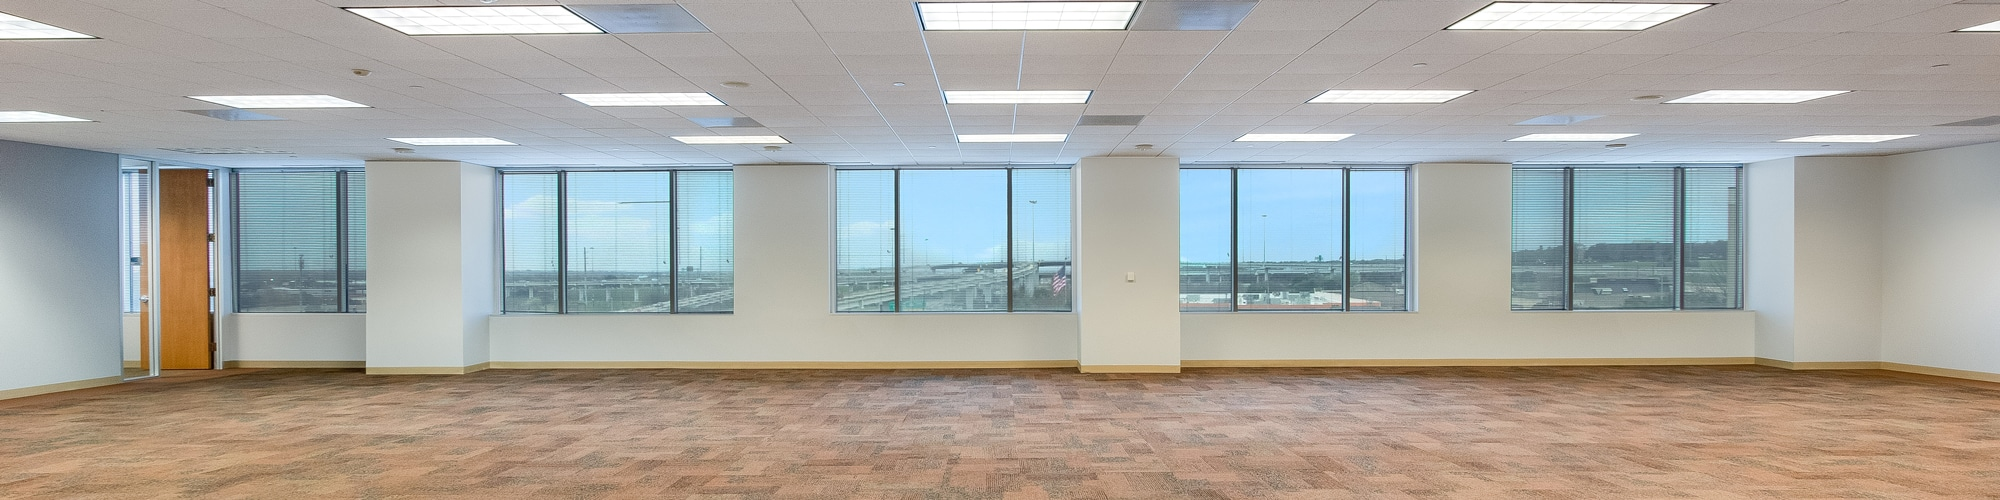 Stonebridge Plaza II - Office Space for Sublease by AQUILA Commercial in Austin, Texas